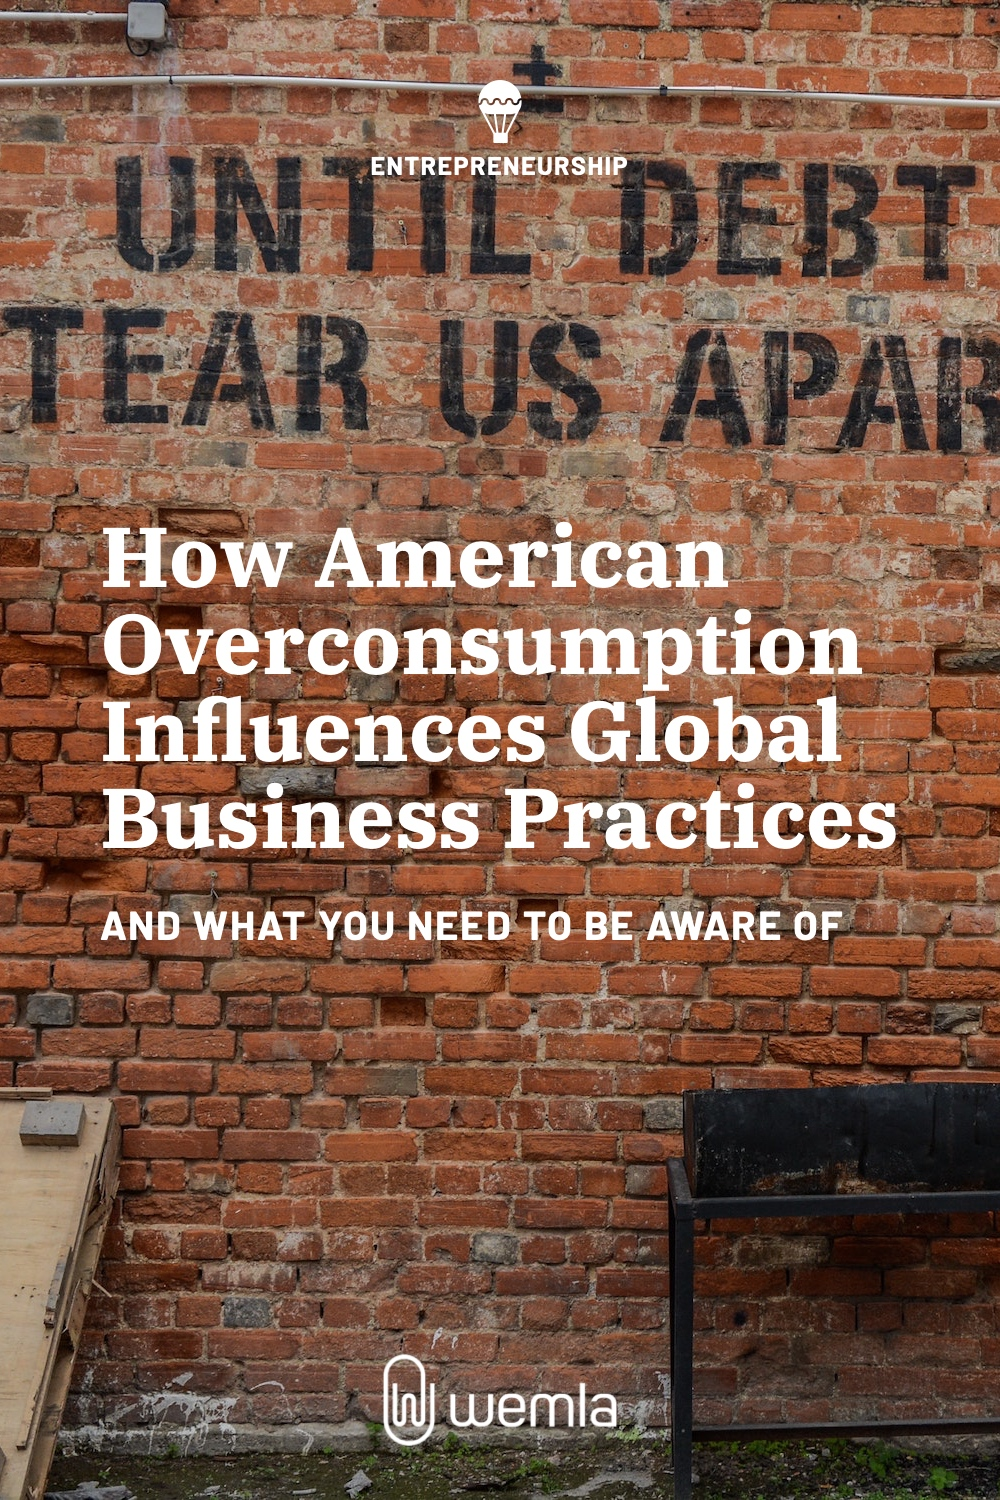 How American Overconsumption Influences Global Business Practices And What You Need To Be Aware Of